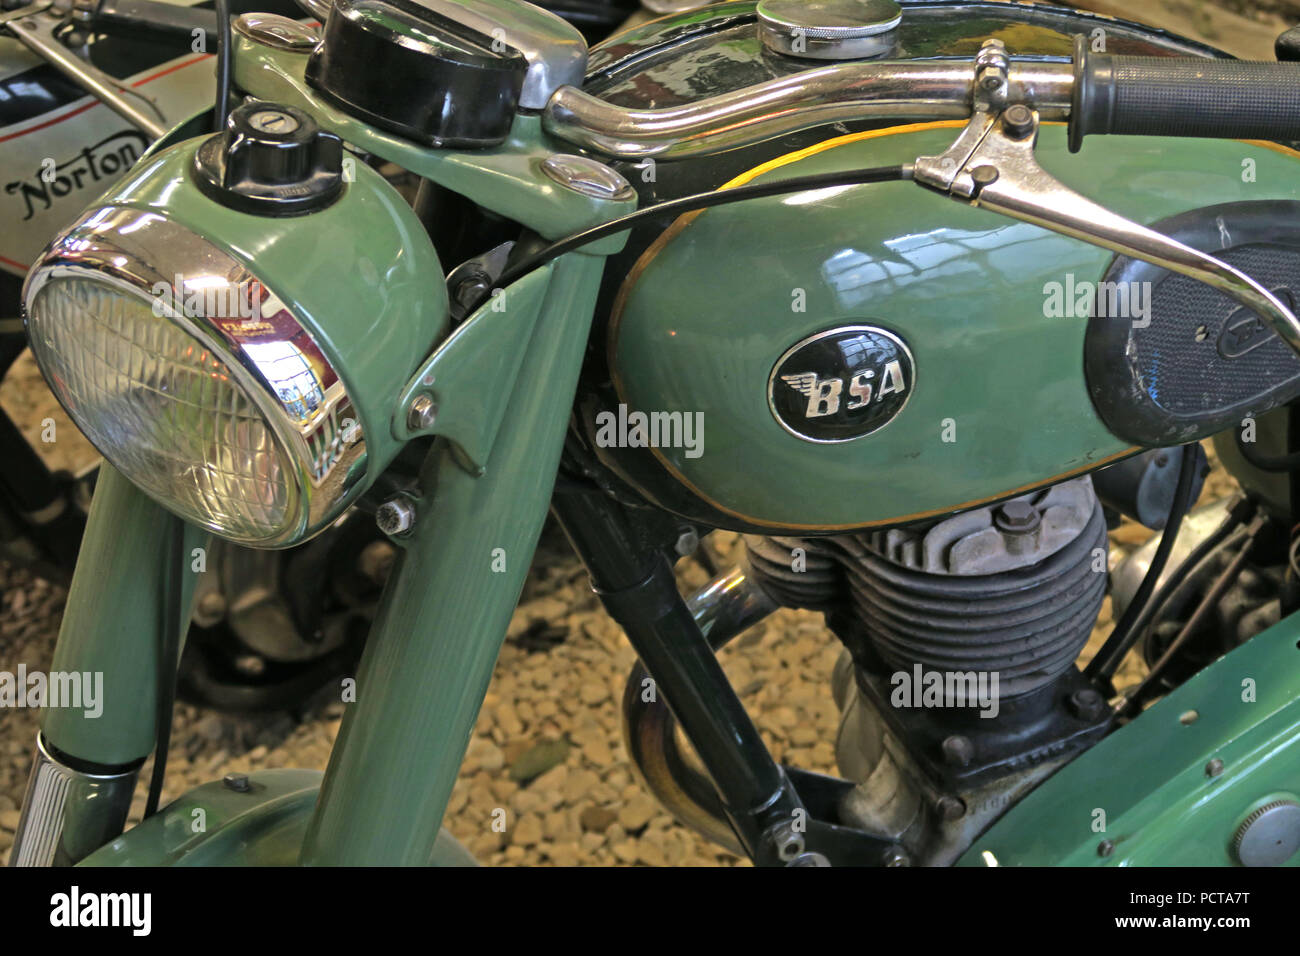 BSA Motor bike in sea green - Stock Image